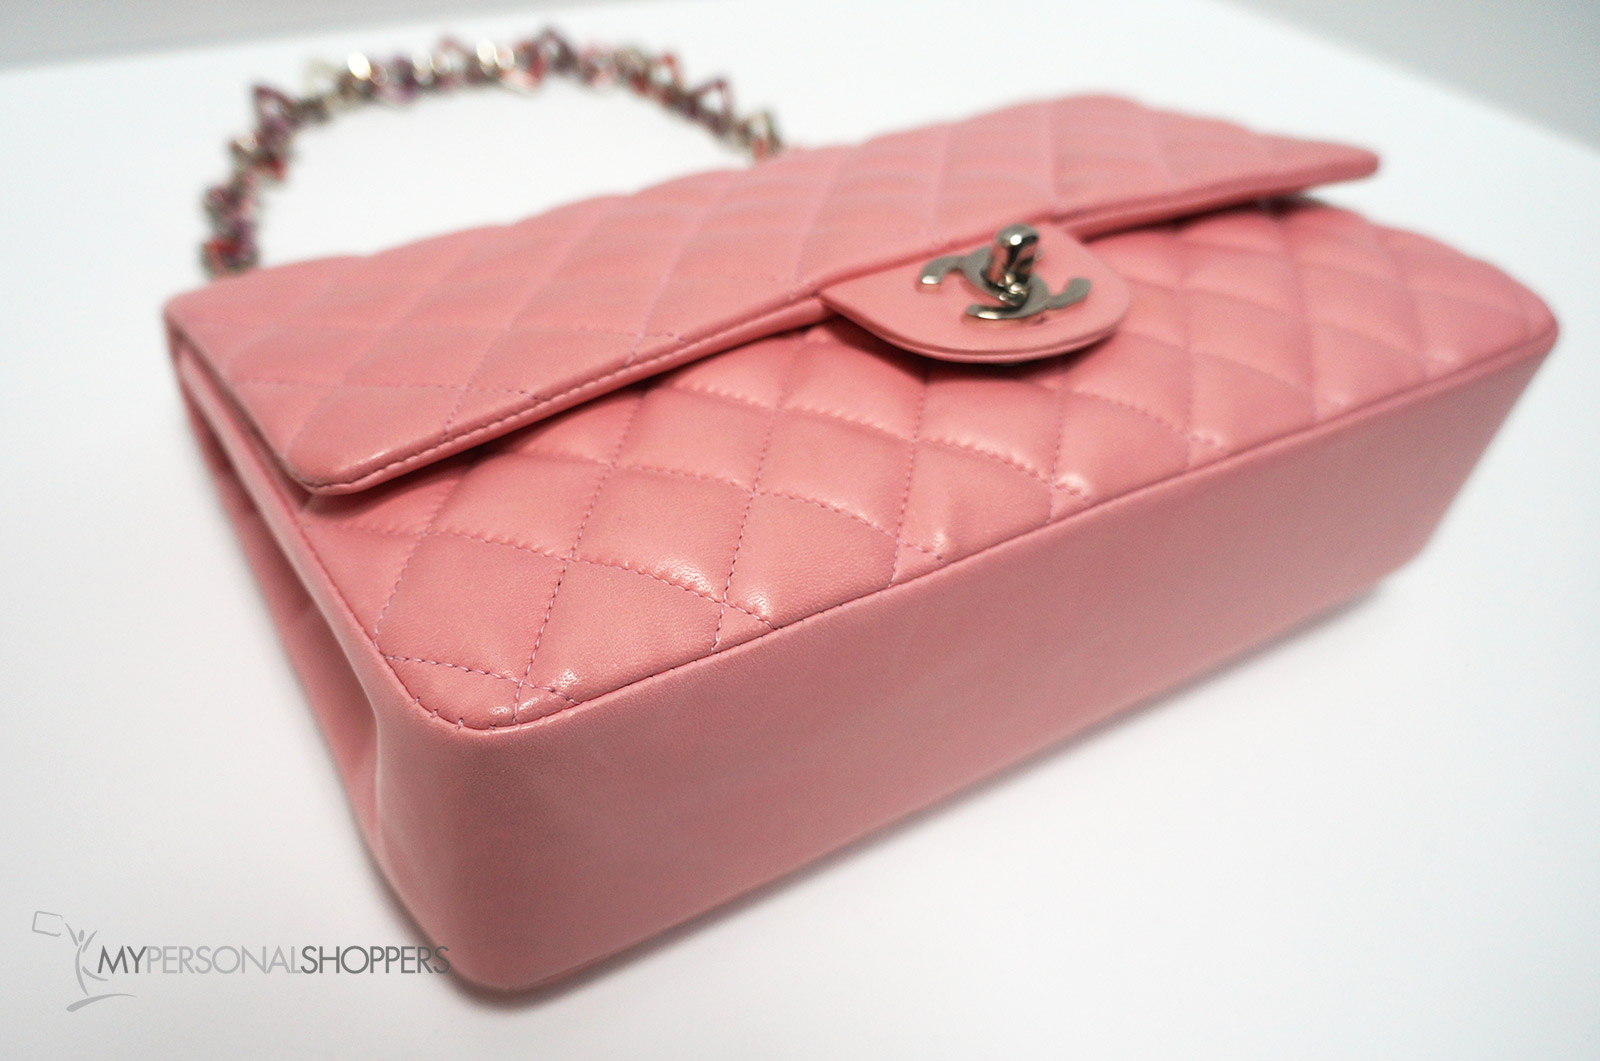 e1f8b1567e7a Chanel Limited Edition Pink Lambskin Leather Valentine Heart Chain Flap ...